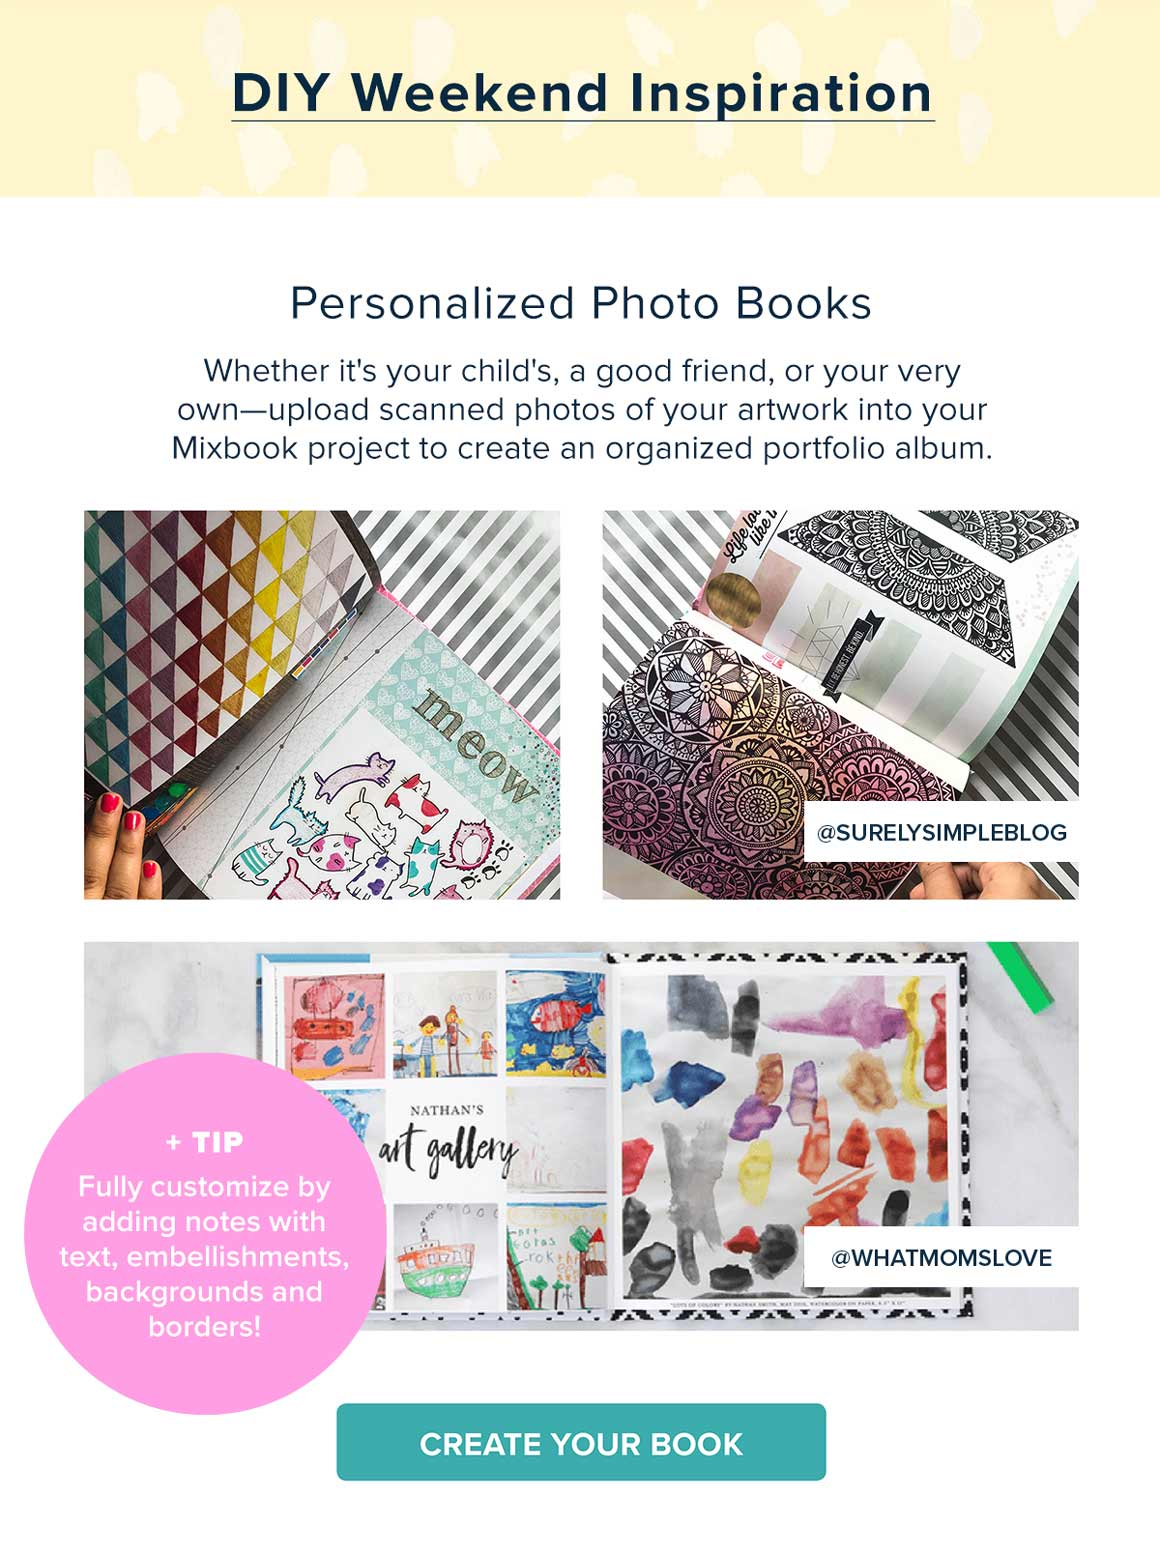 DIY Weekend Inspiration - Personalized Photo Books - Create Now